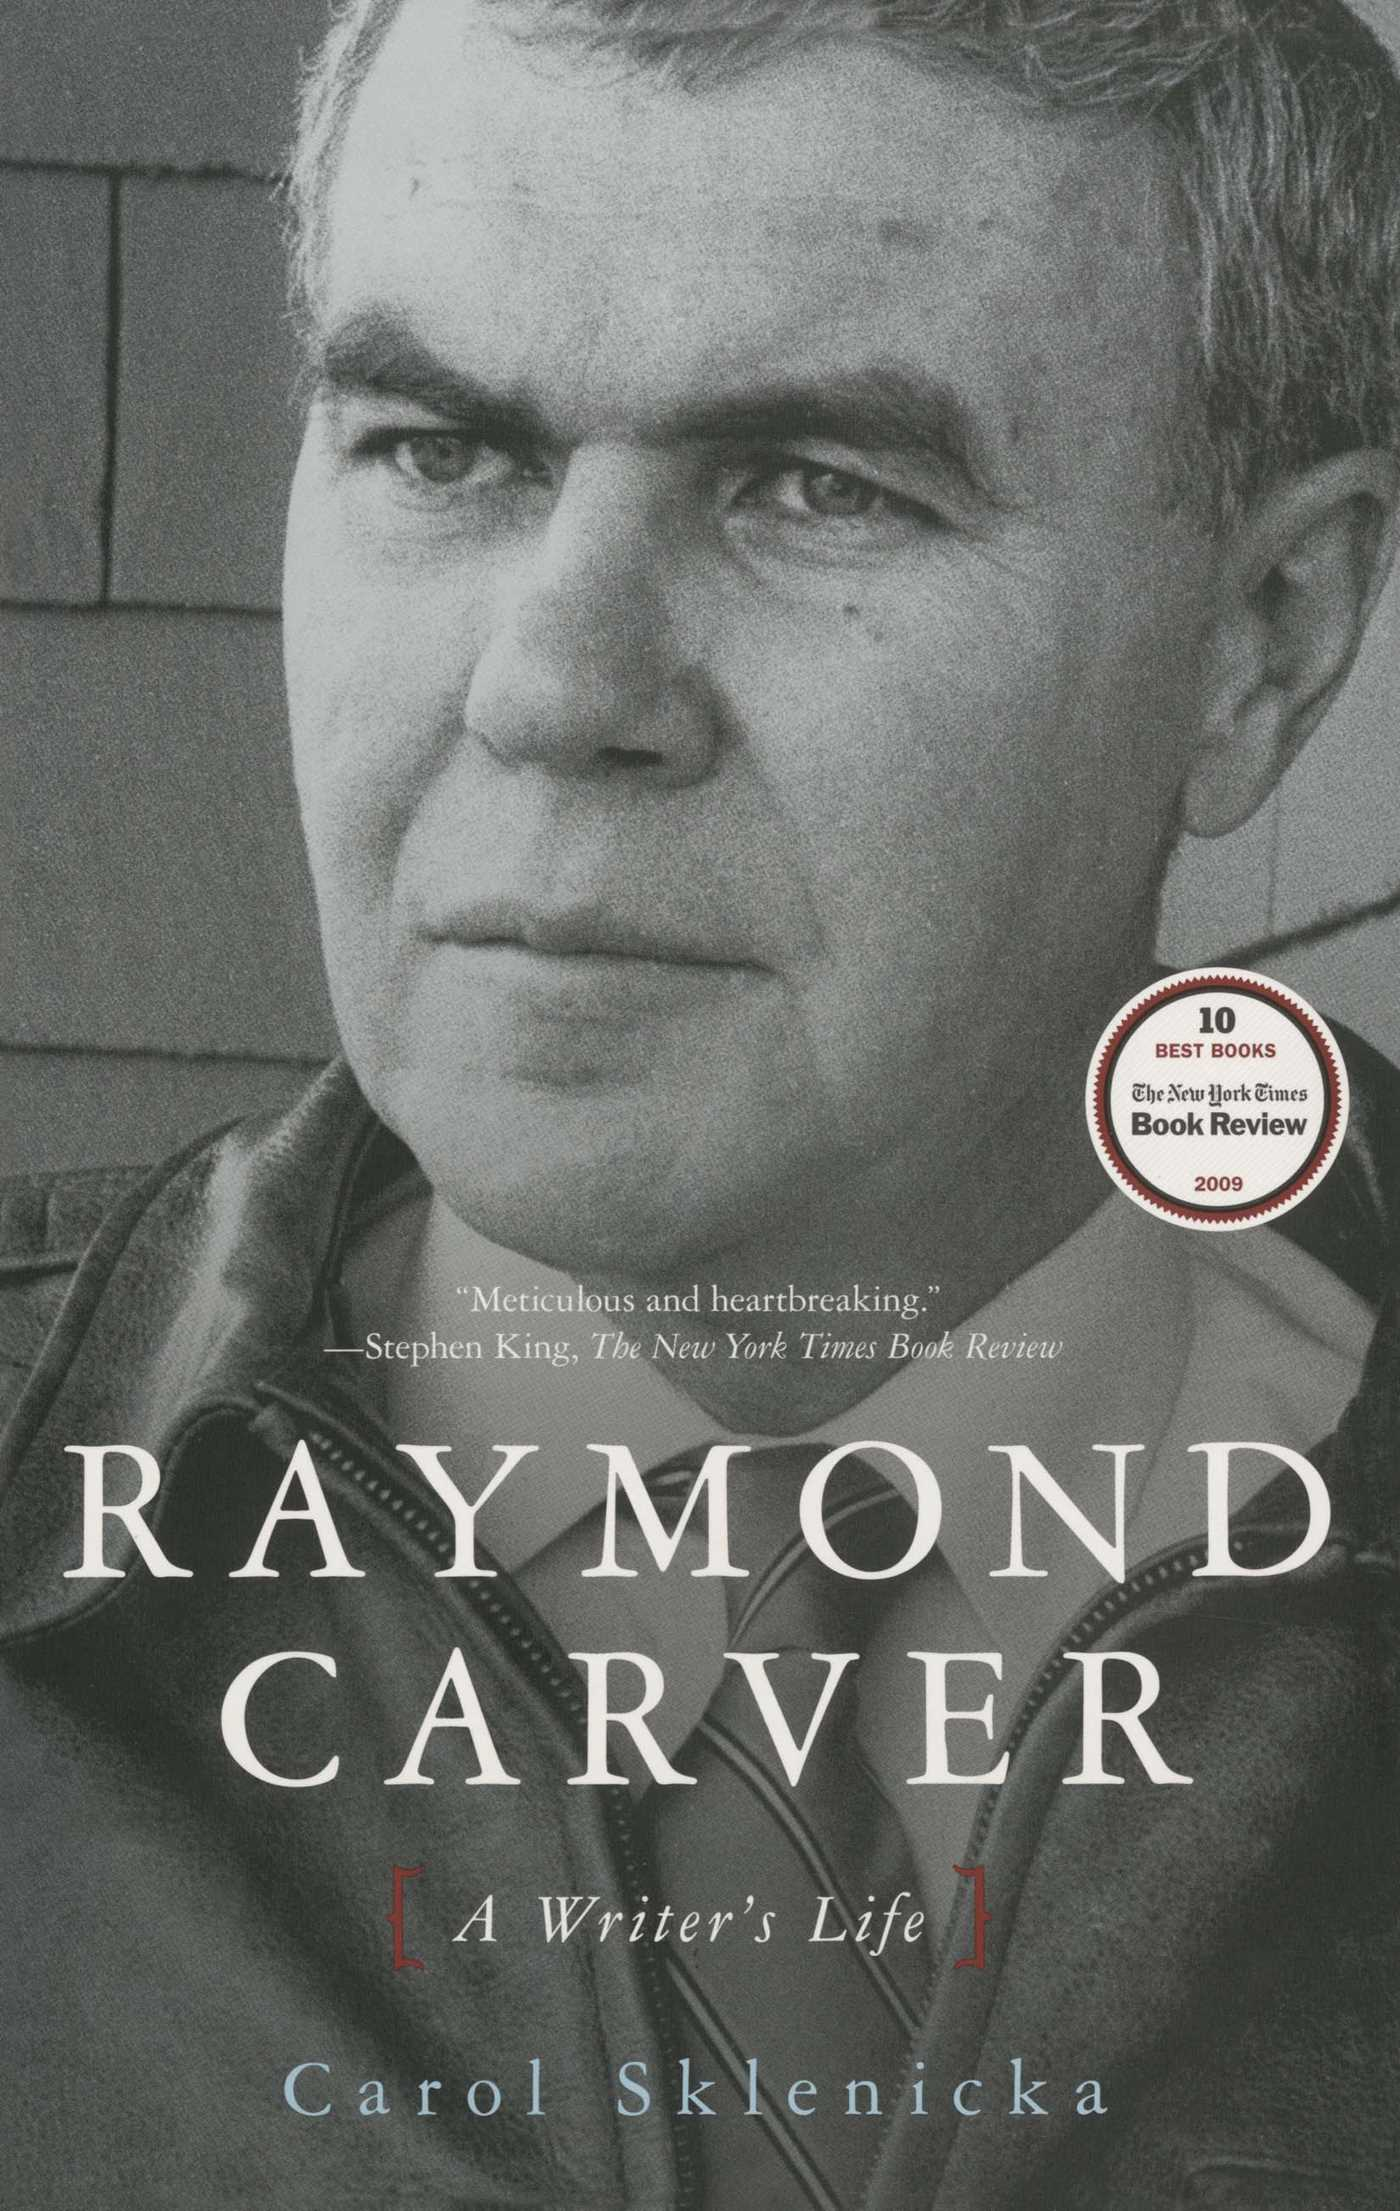 Raymond Carver Biography